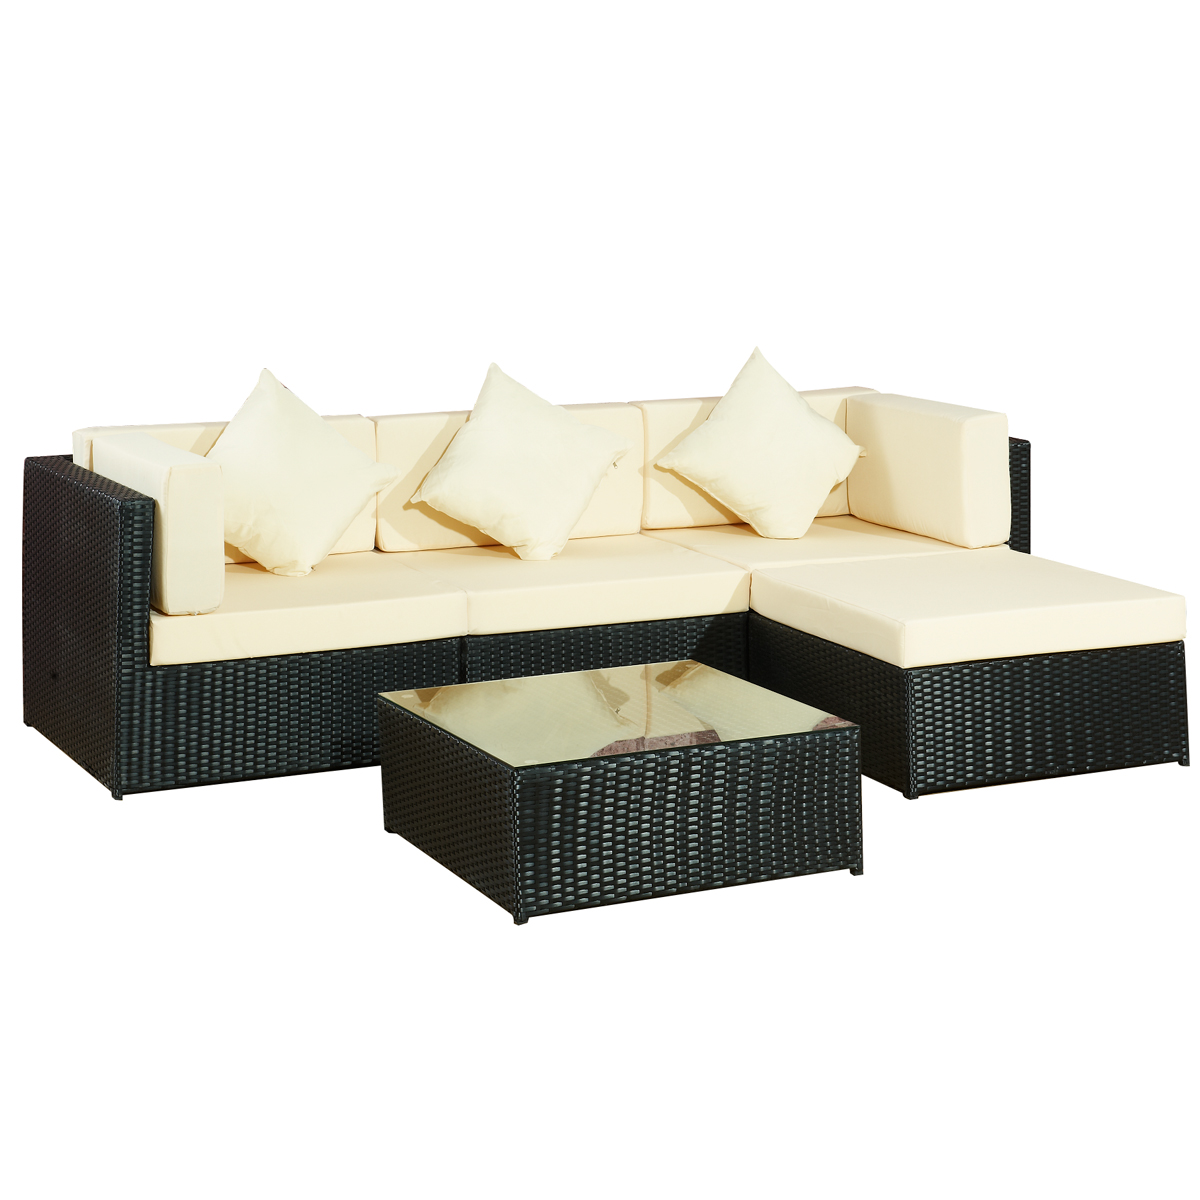 gartenm bel lounge sofa bergen ii schwarz beige gartenlounge set polyrattan. Black Bedroom Furniture Sets. Home Design Ideas